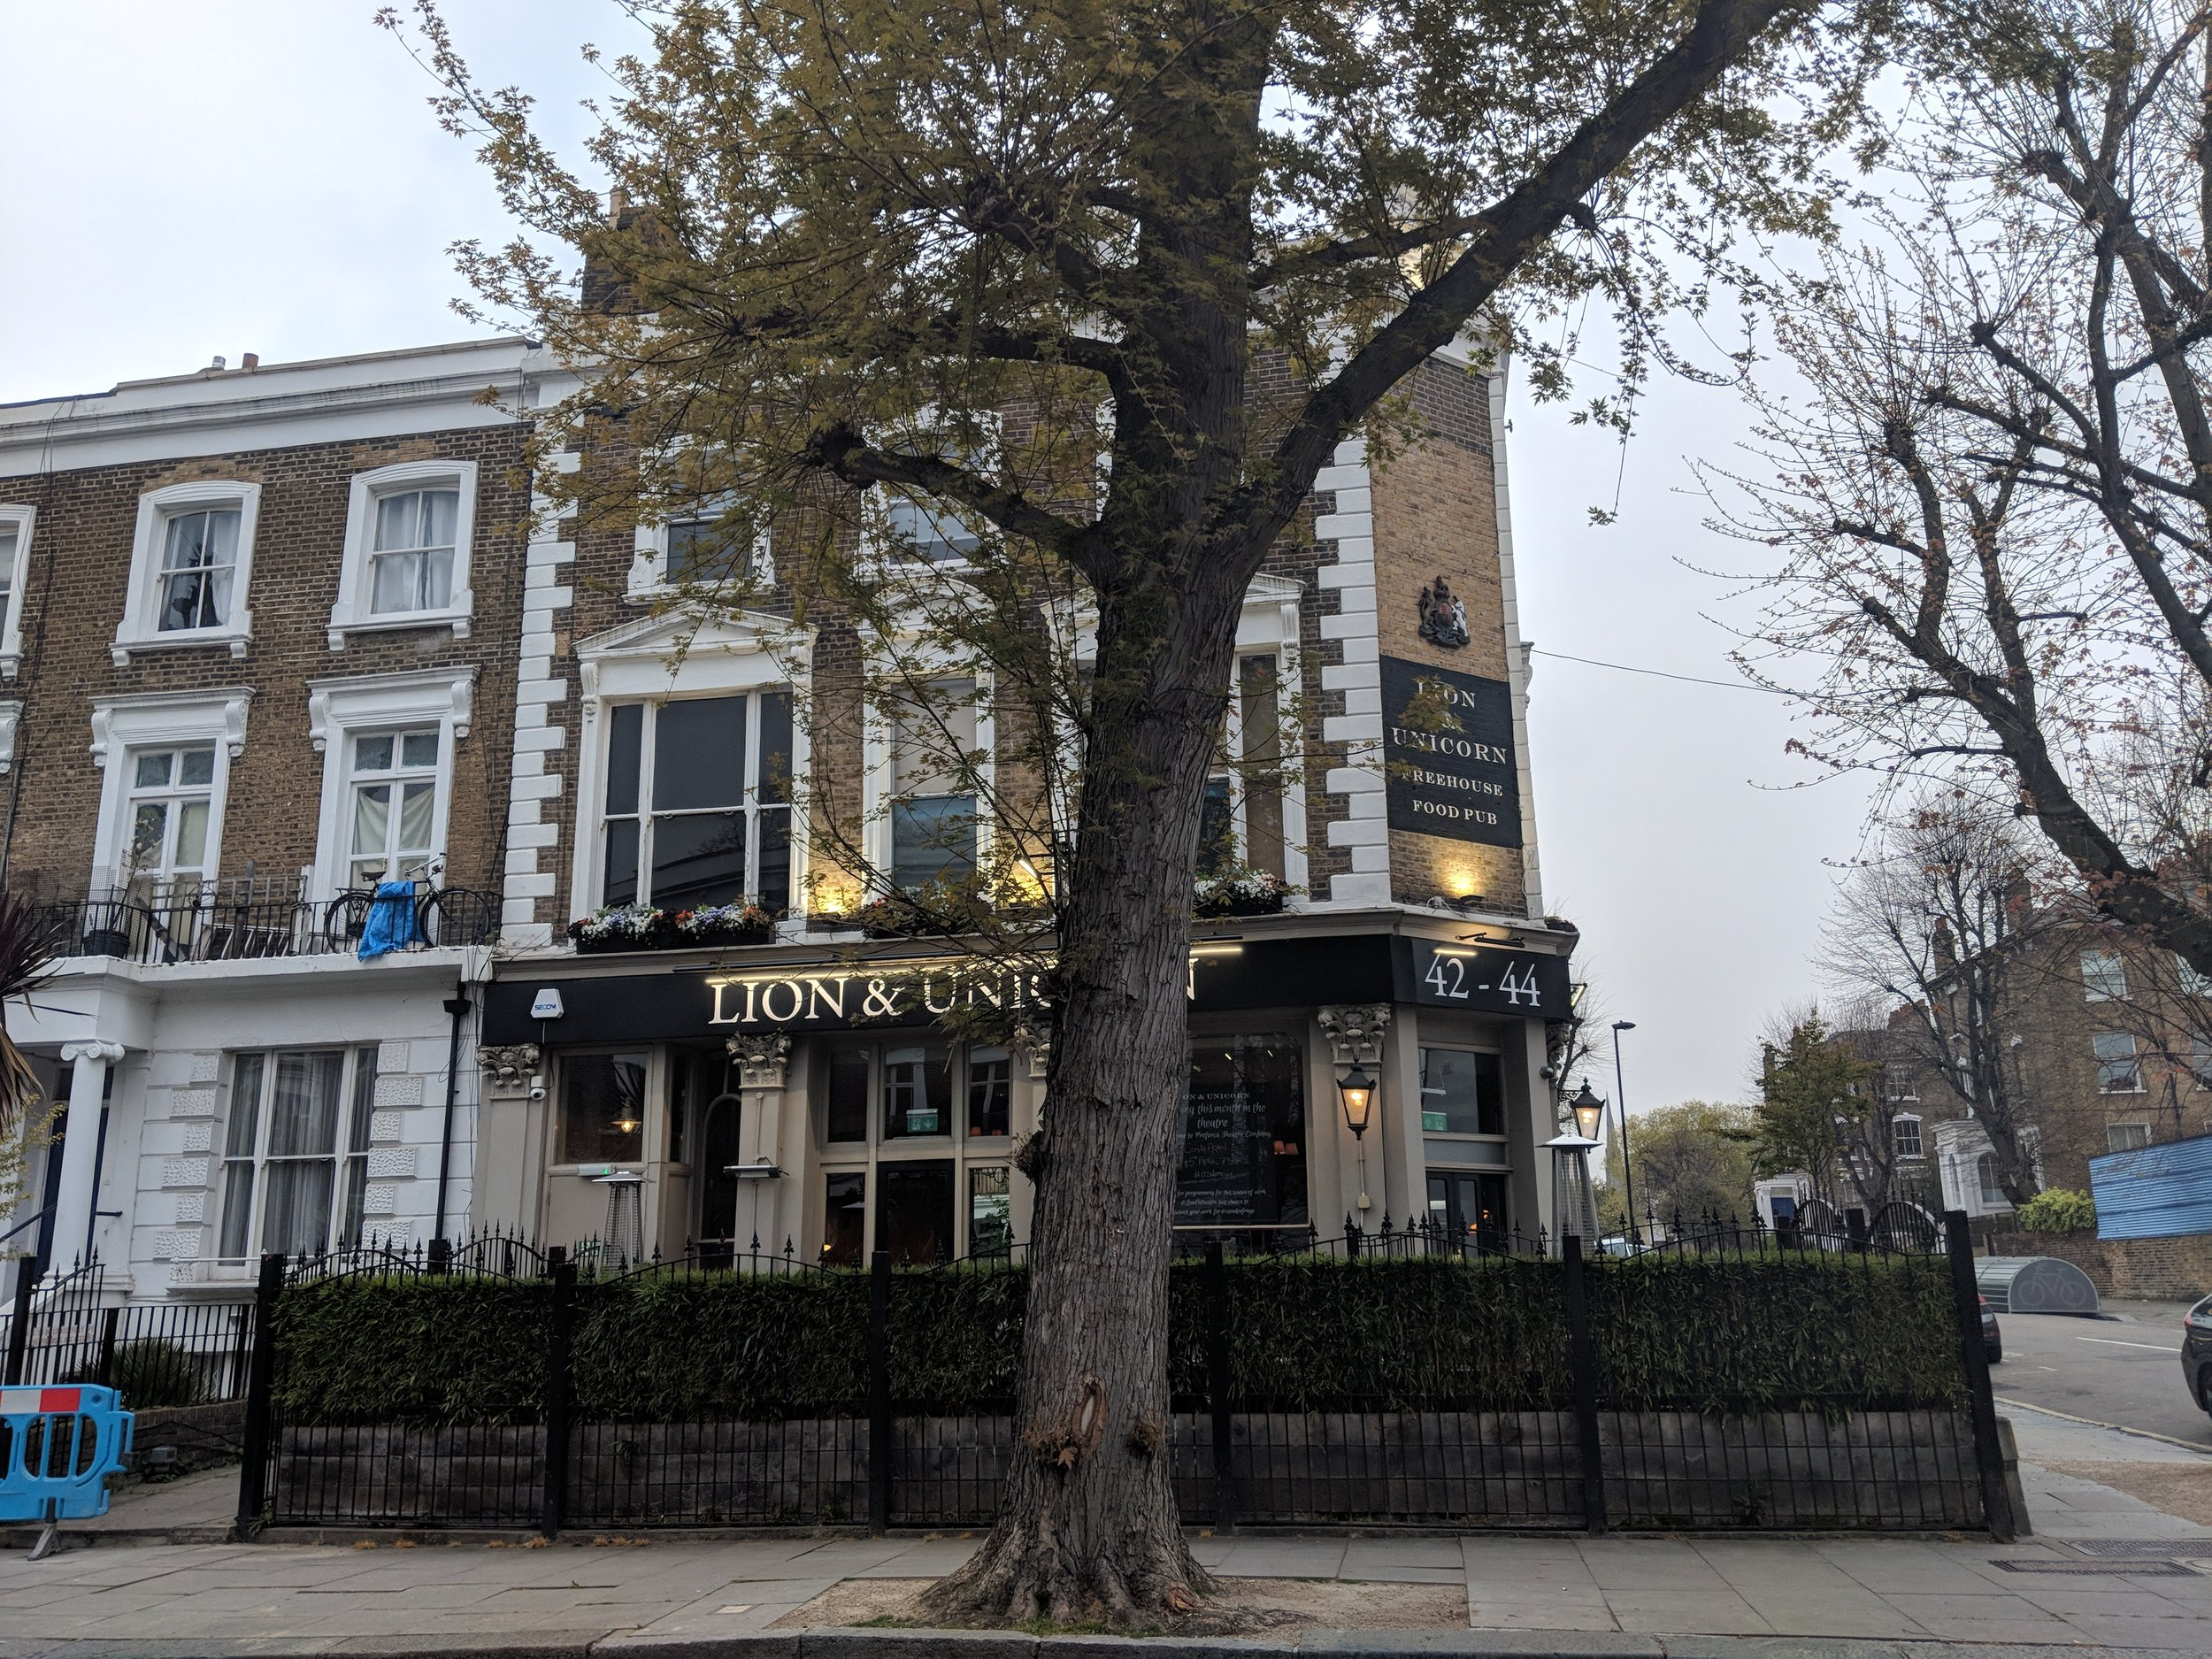 The Lion & Unicorn Theatre - visited 16/04/2019